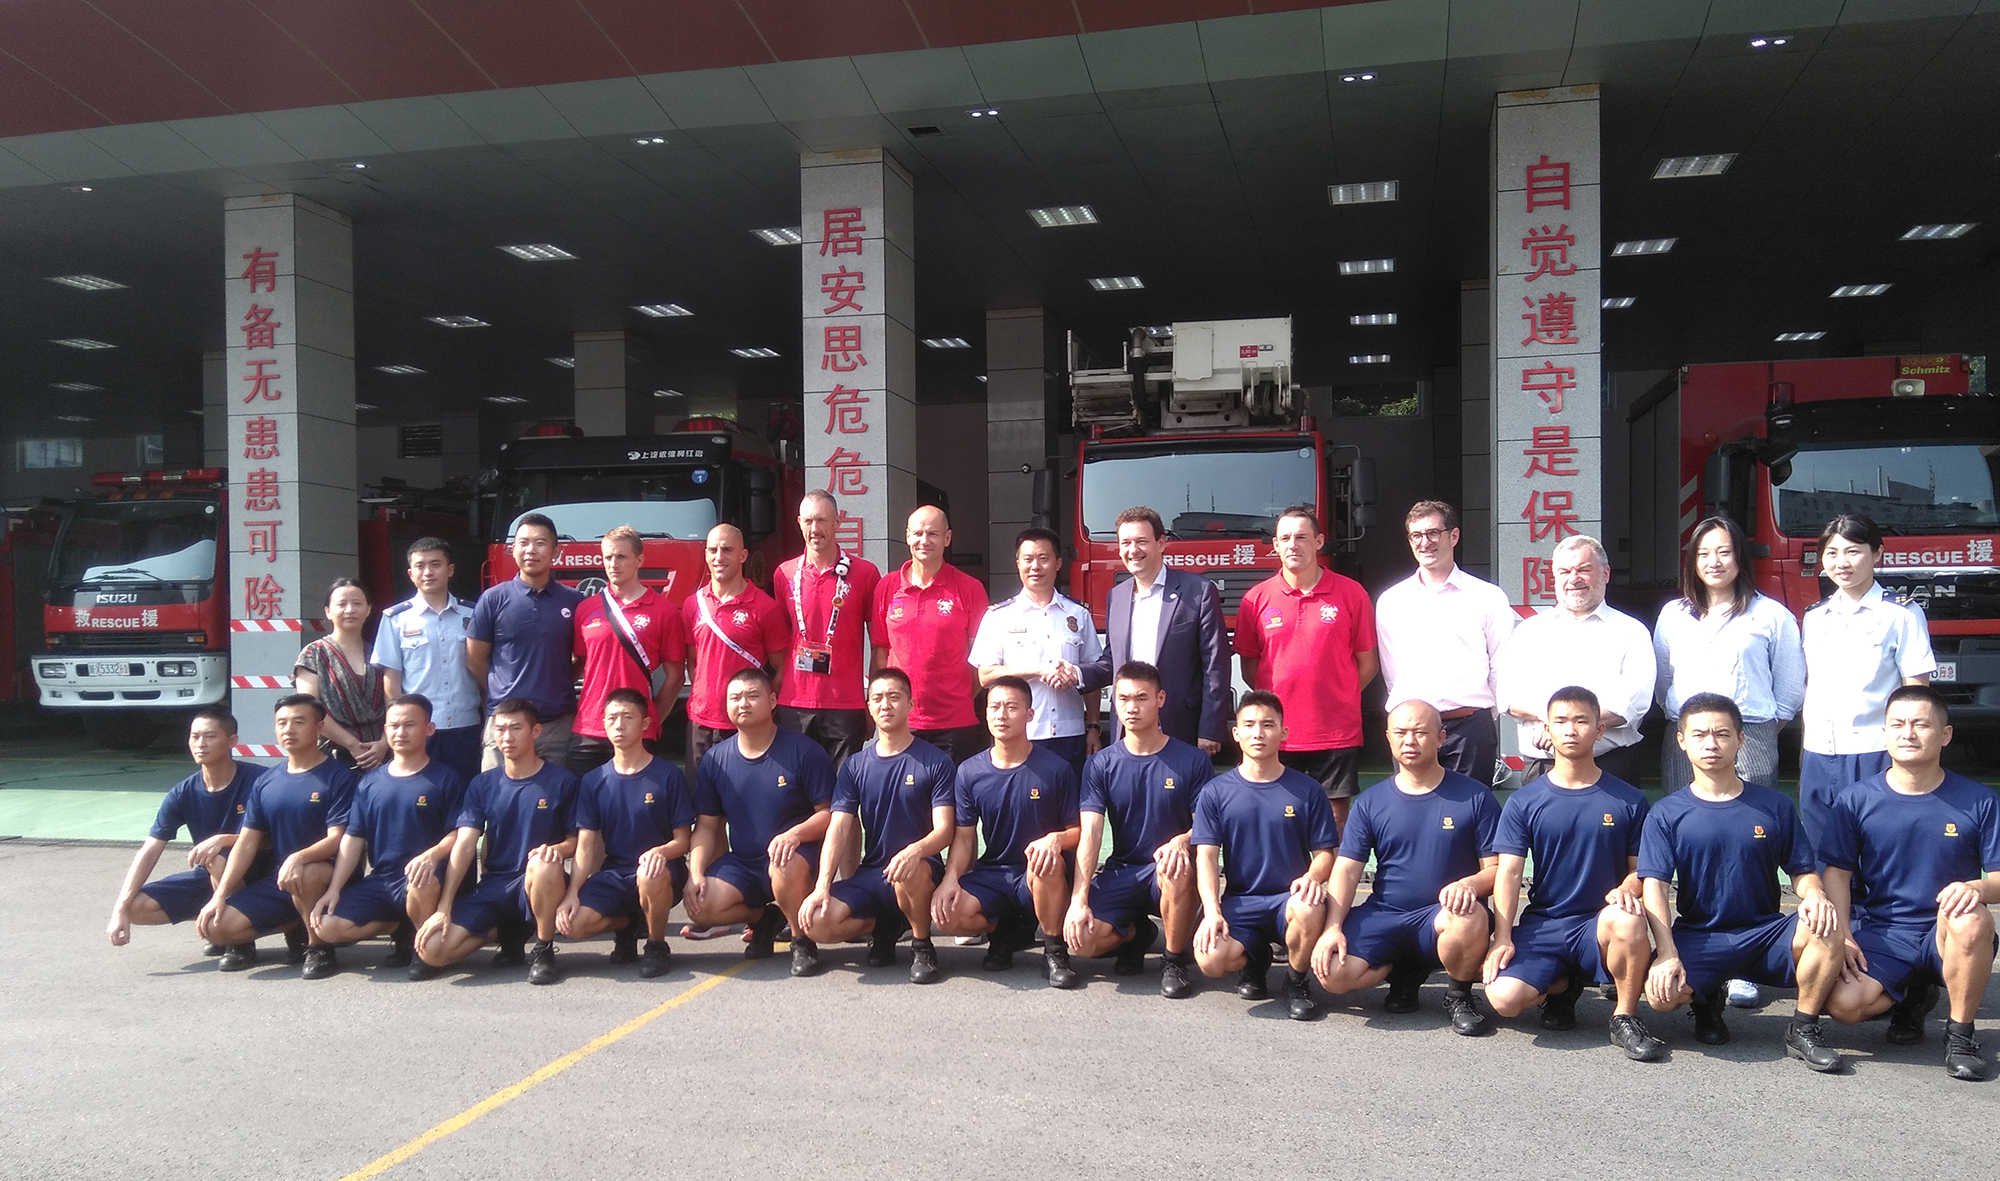 The Brussels and Chinese firemen pose in front of the fire station.